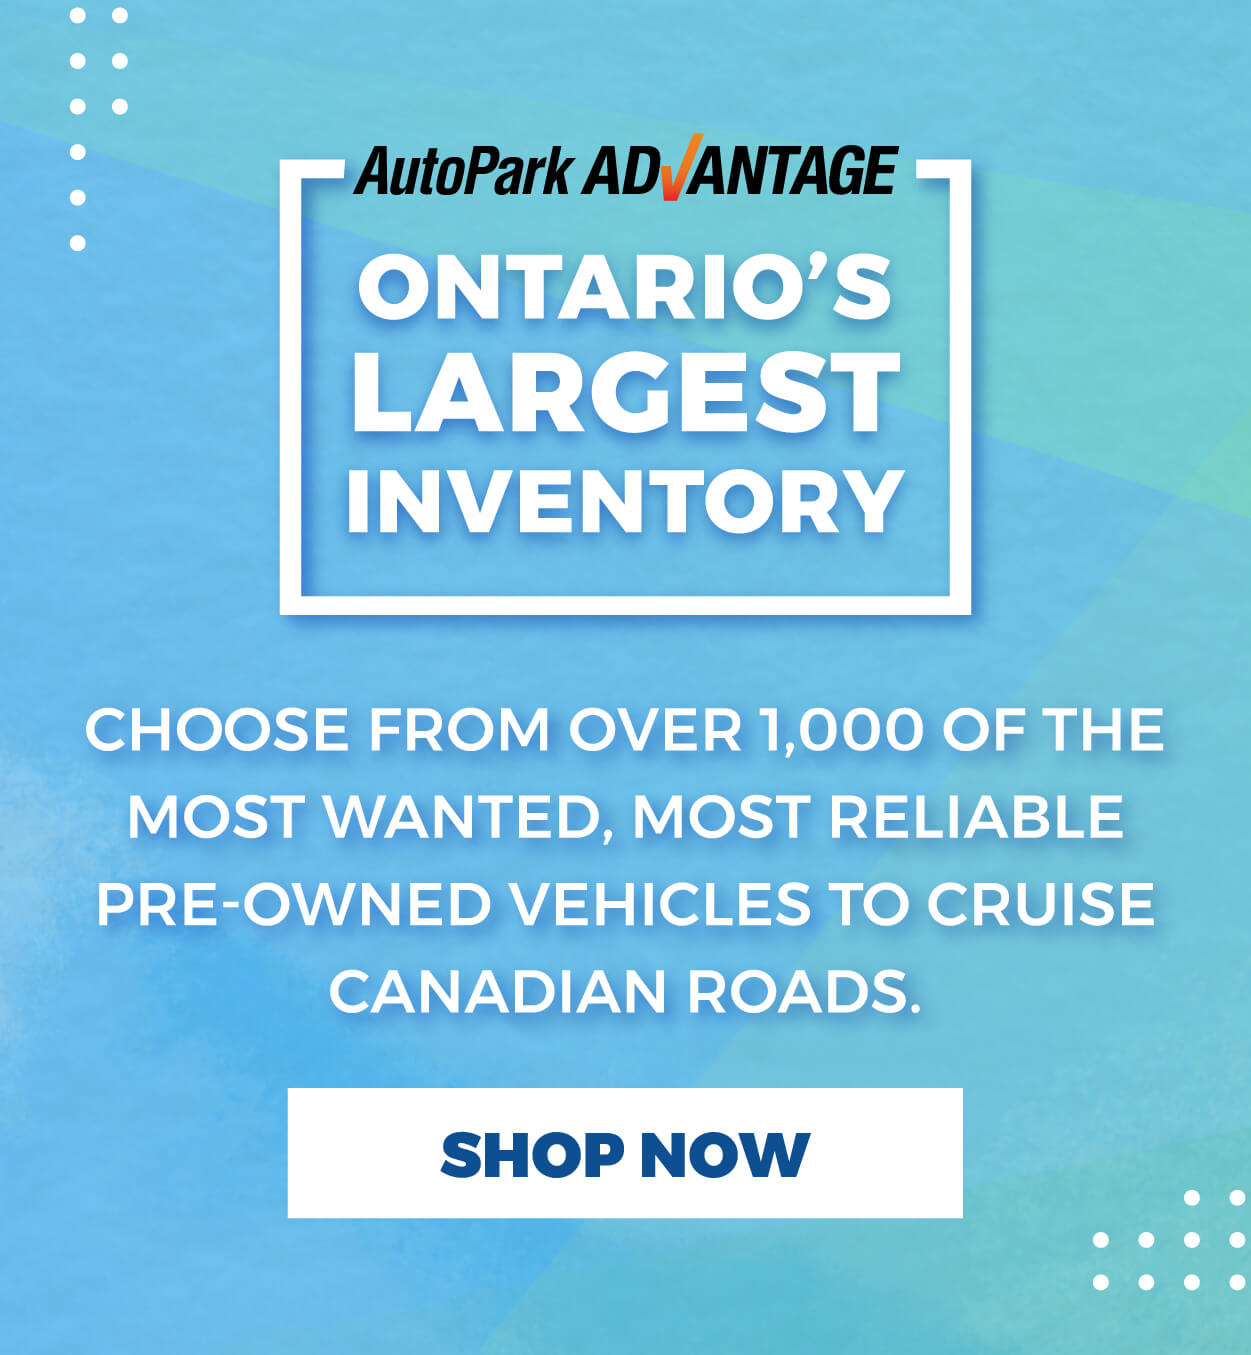 Ontario's Largest Inventory